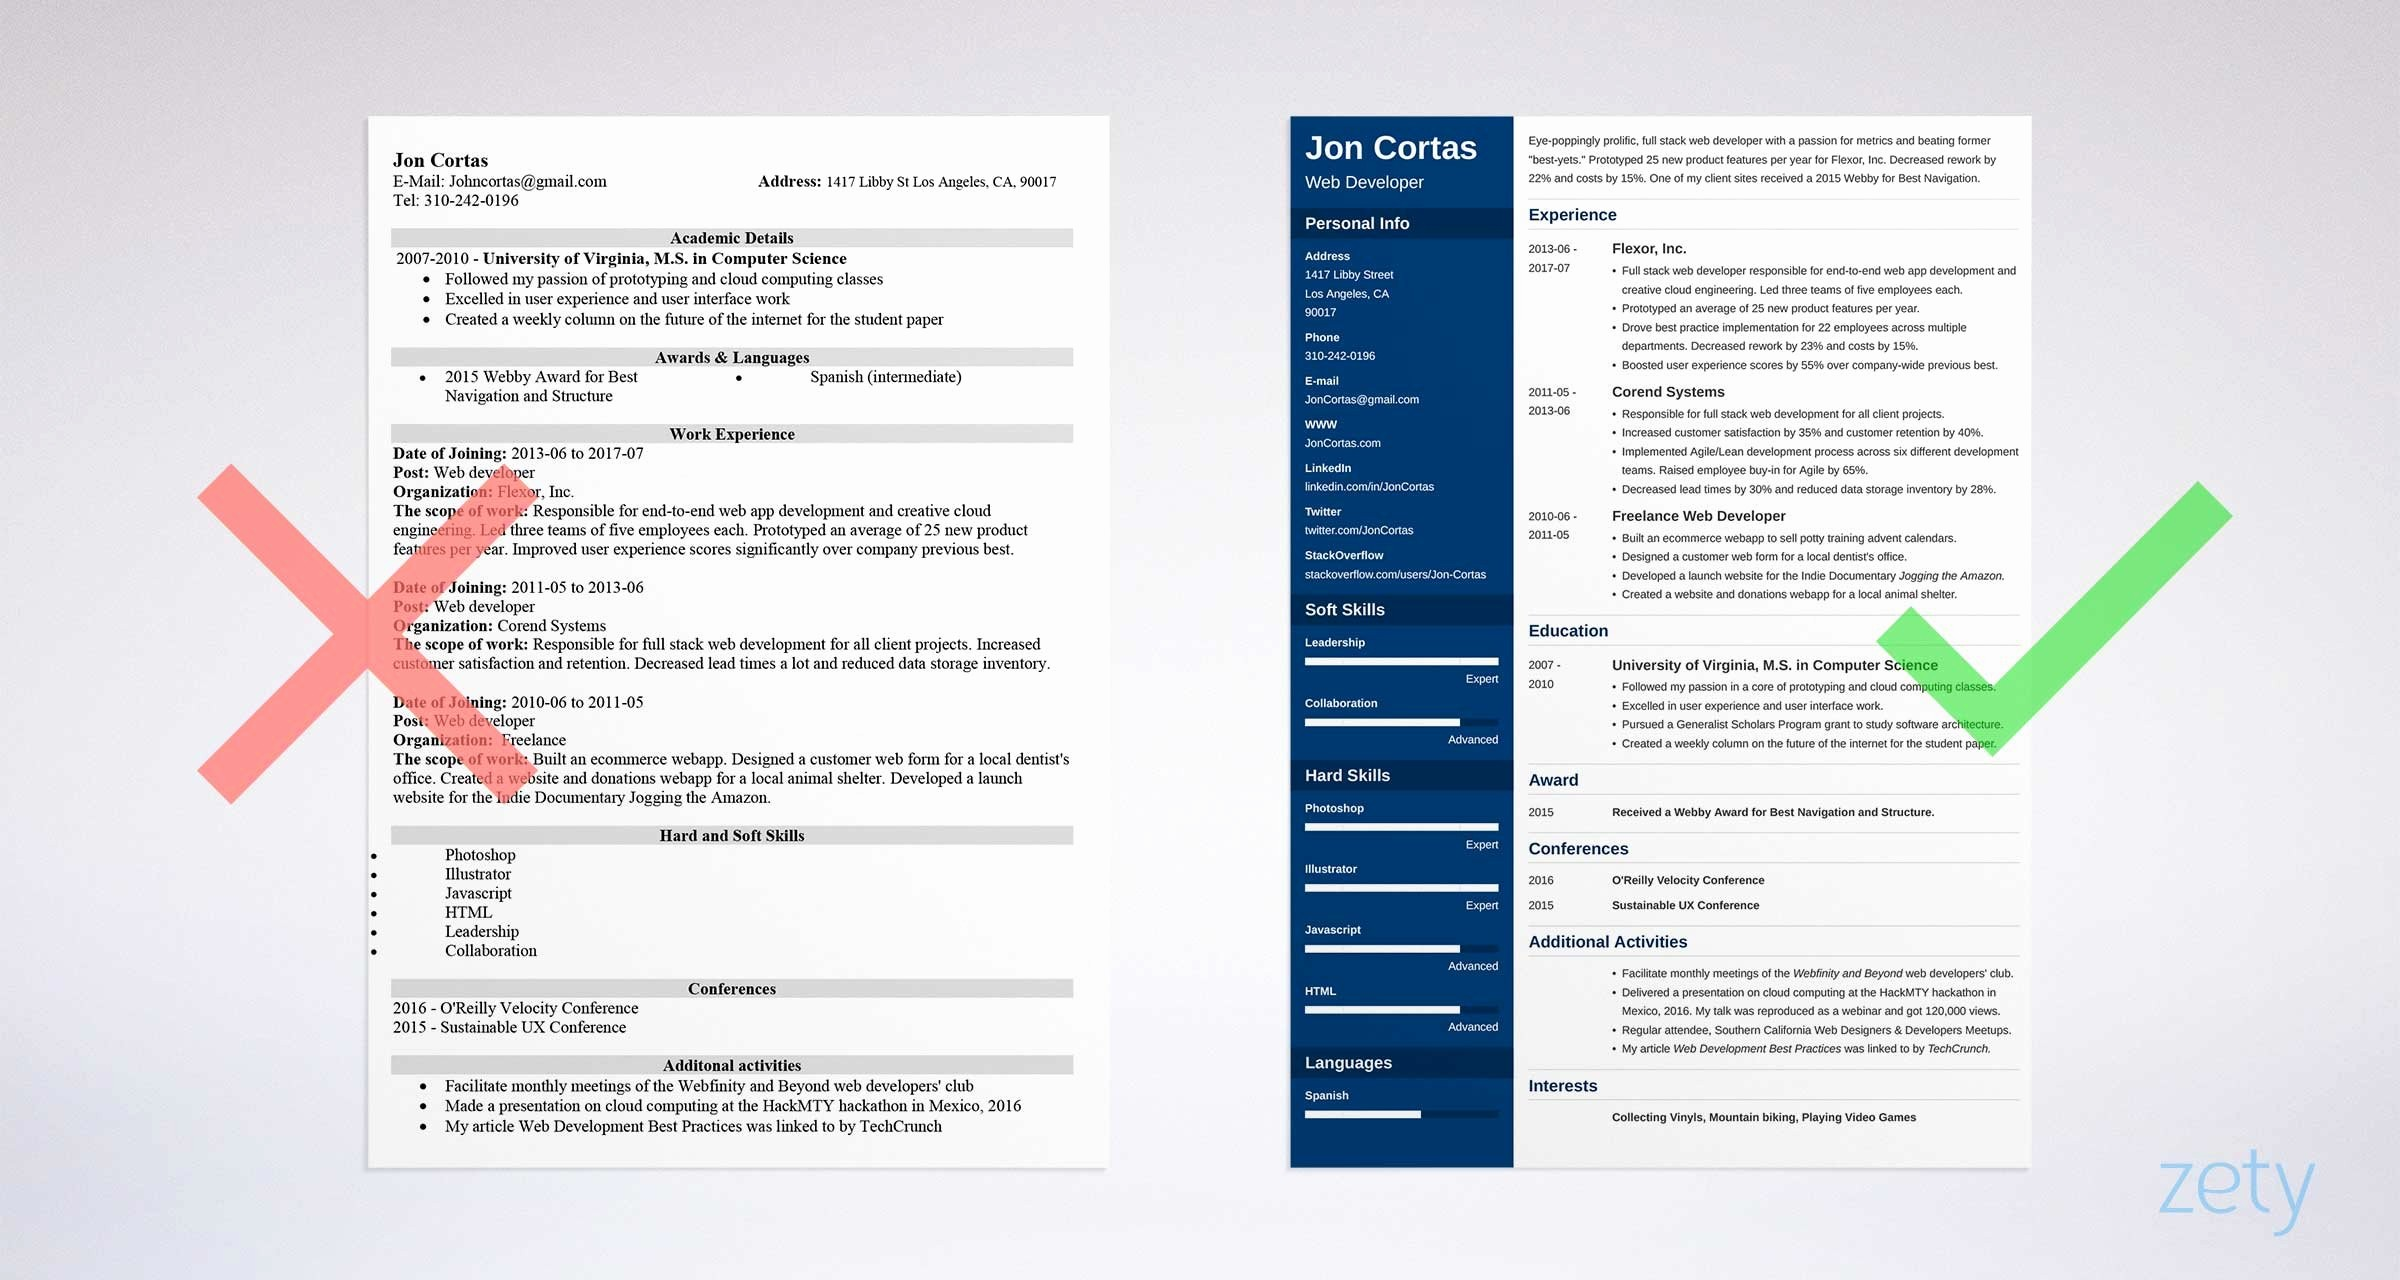 Resume Template for Microsoft Word Unique Free Resume Templates for Word 15 Cv Resume formats to